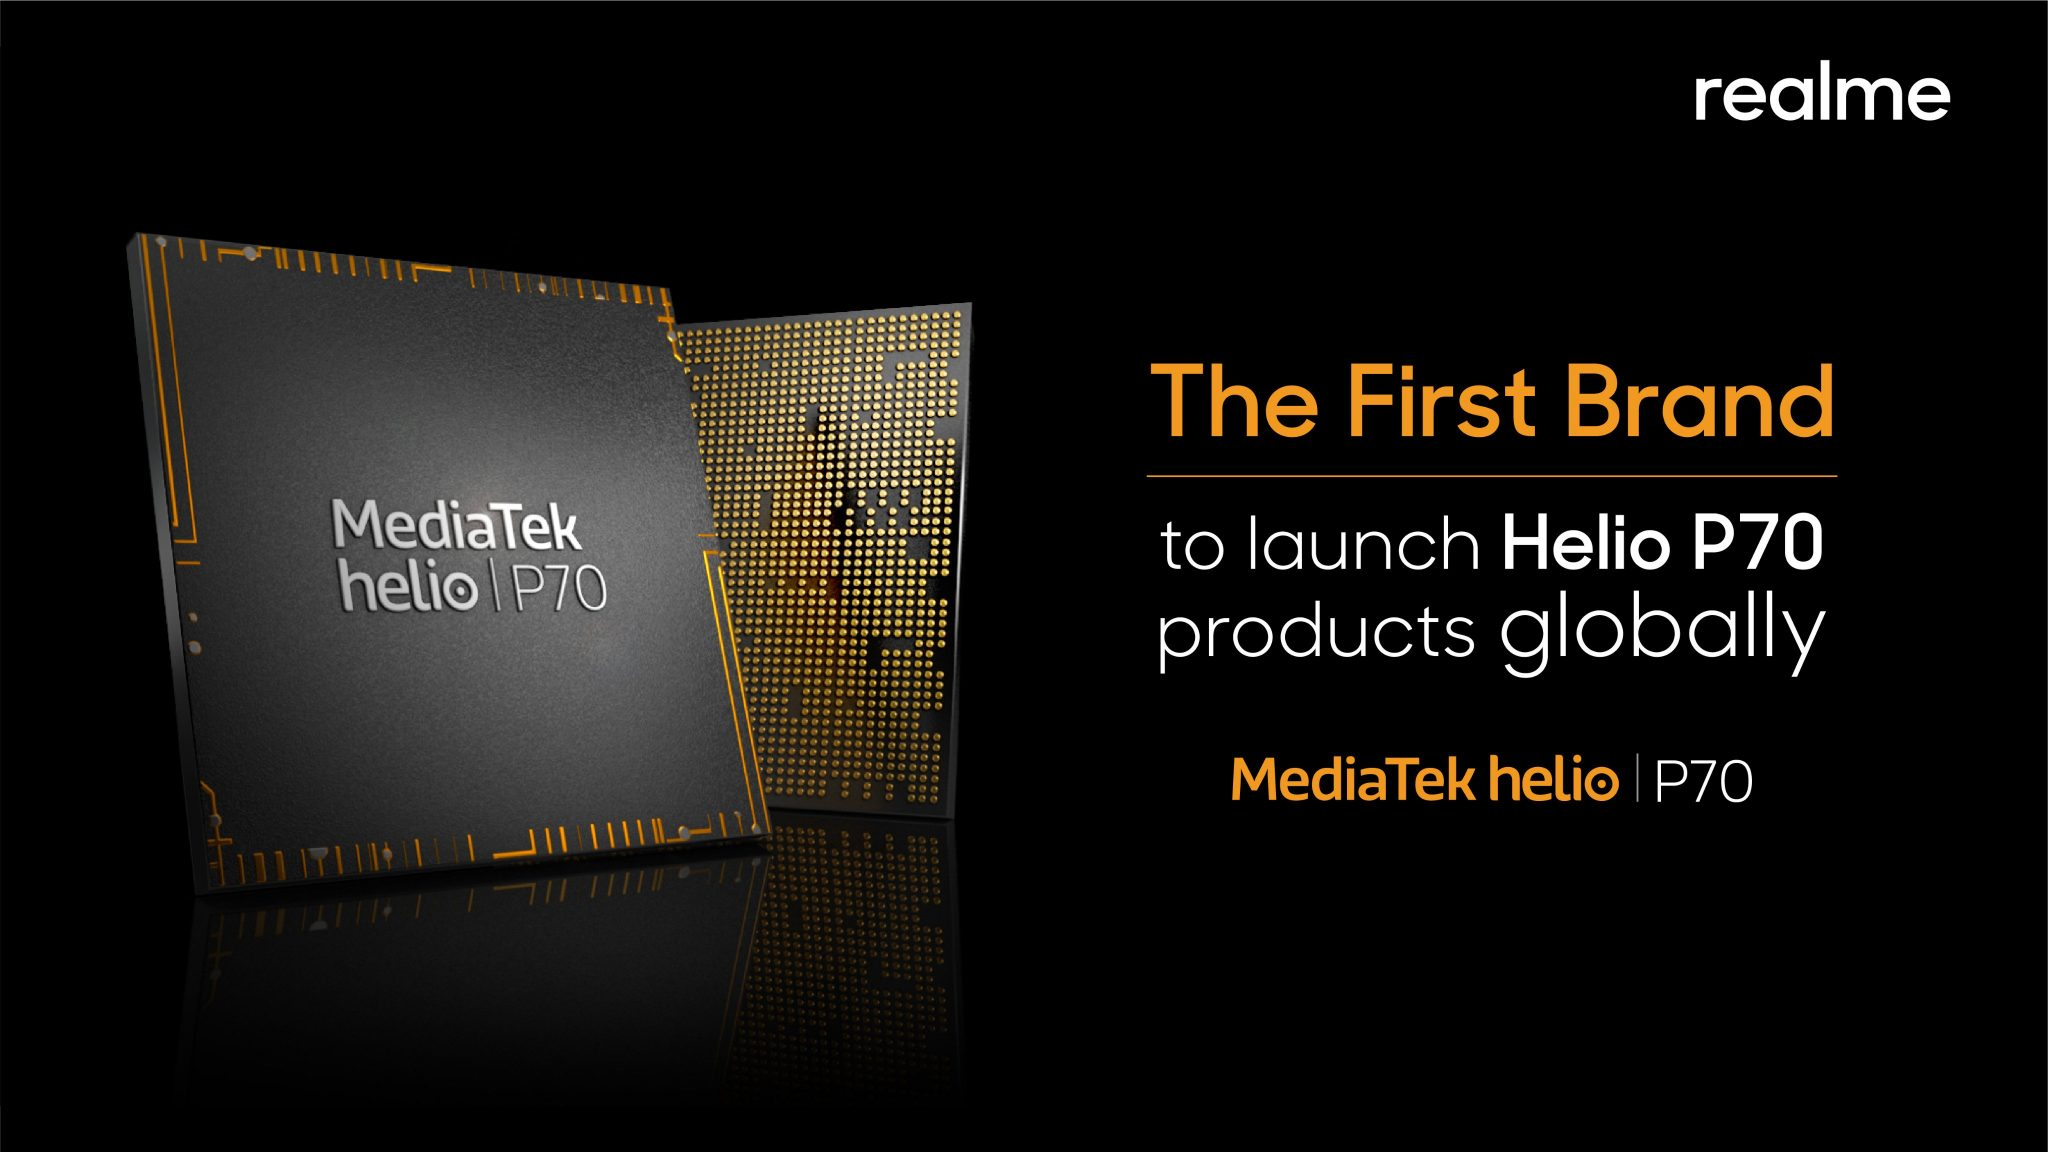 Realme will be the first to launch Helio P70-powered phone globally